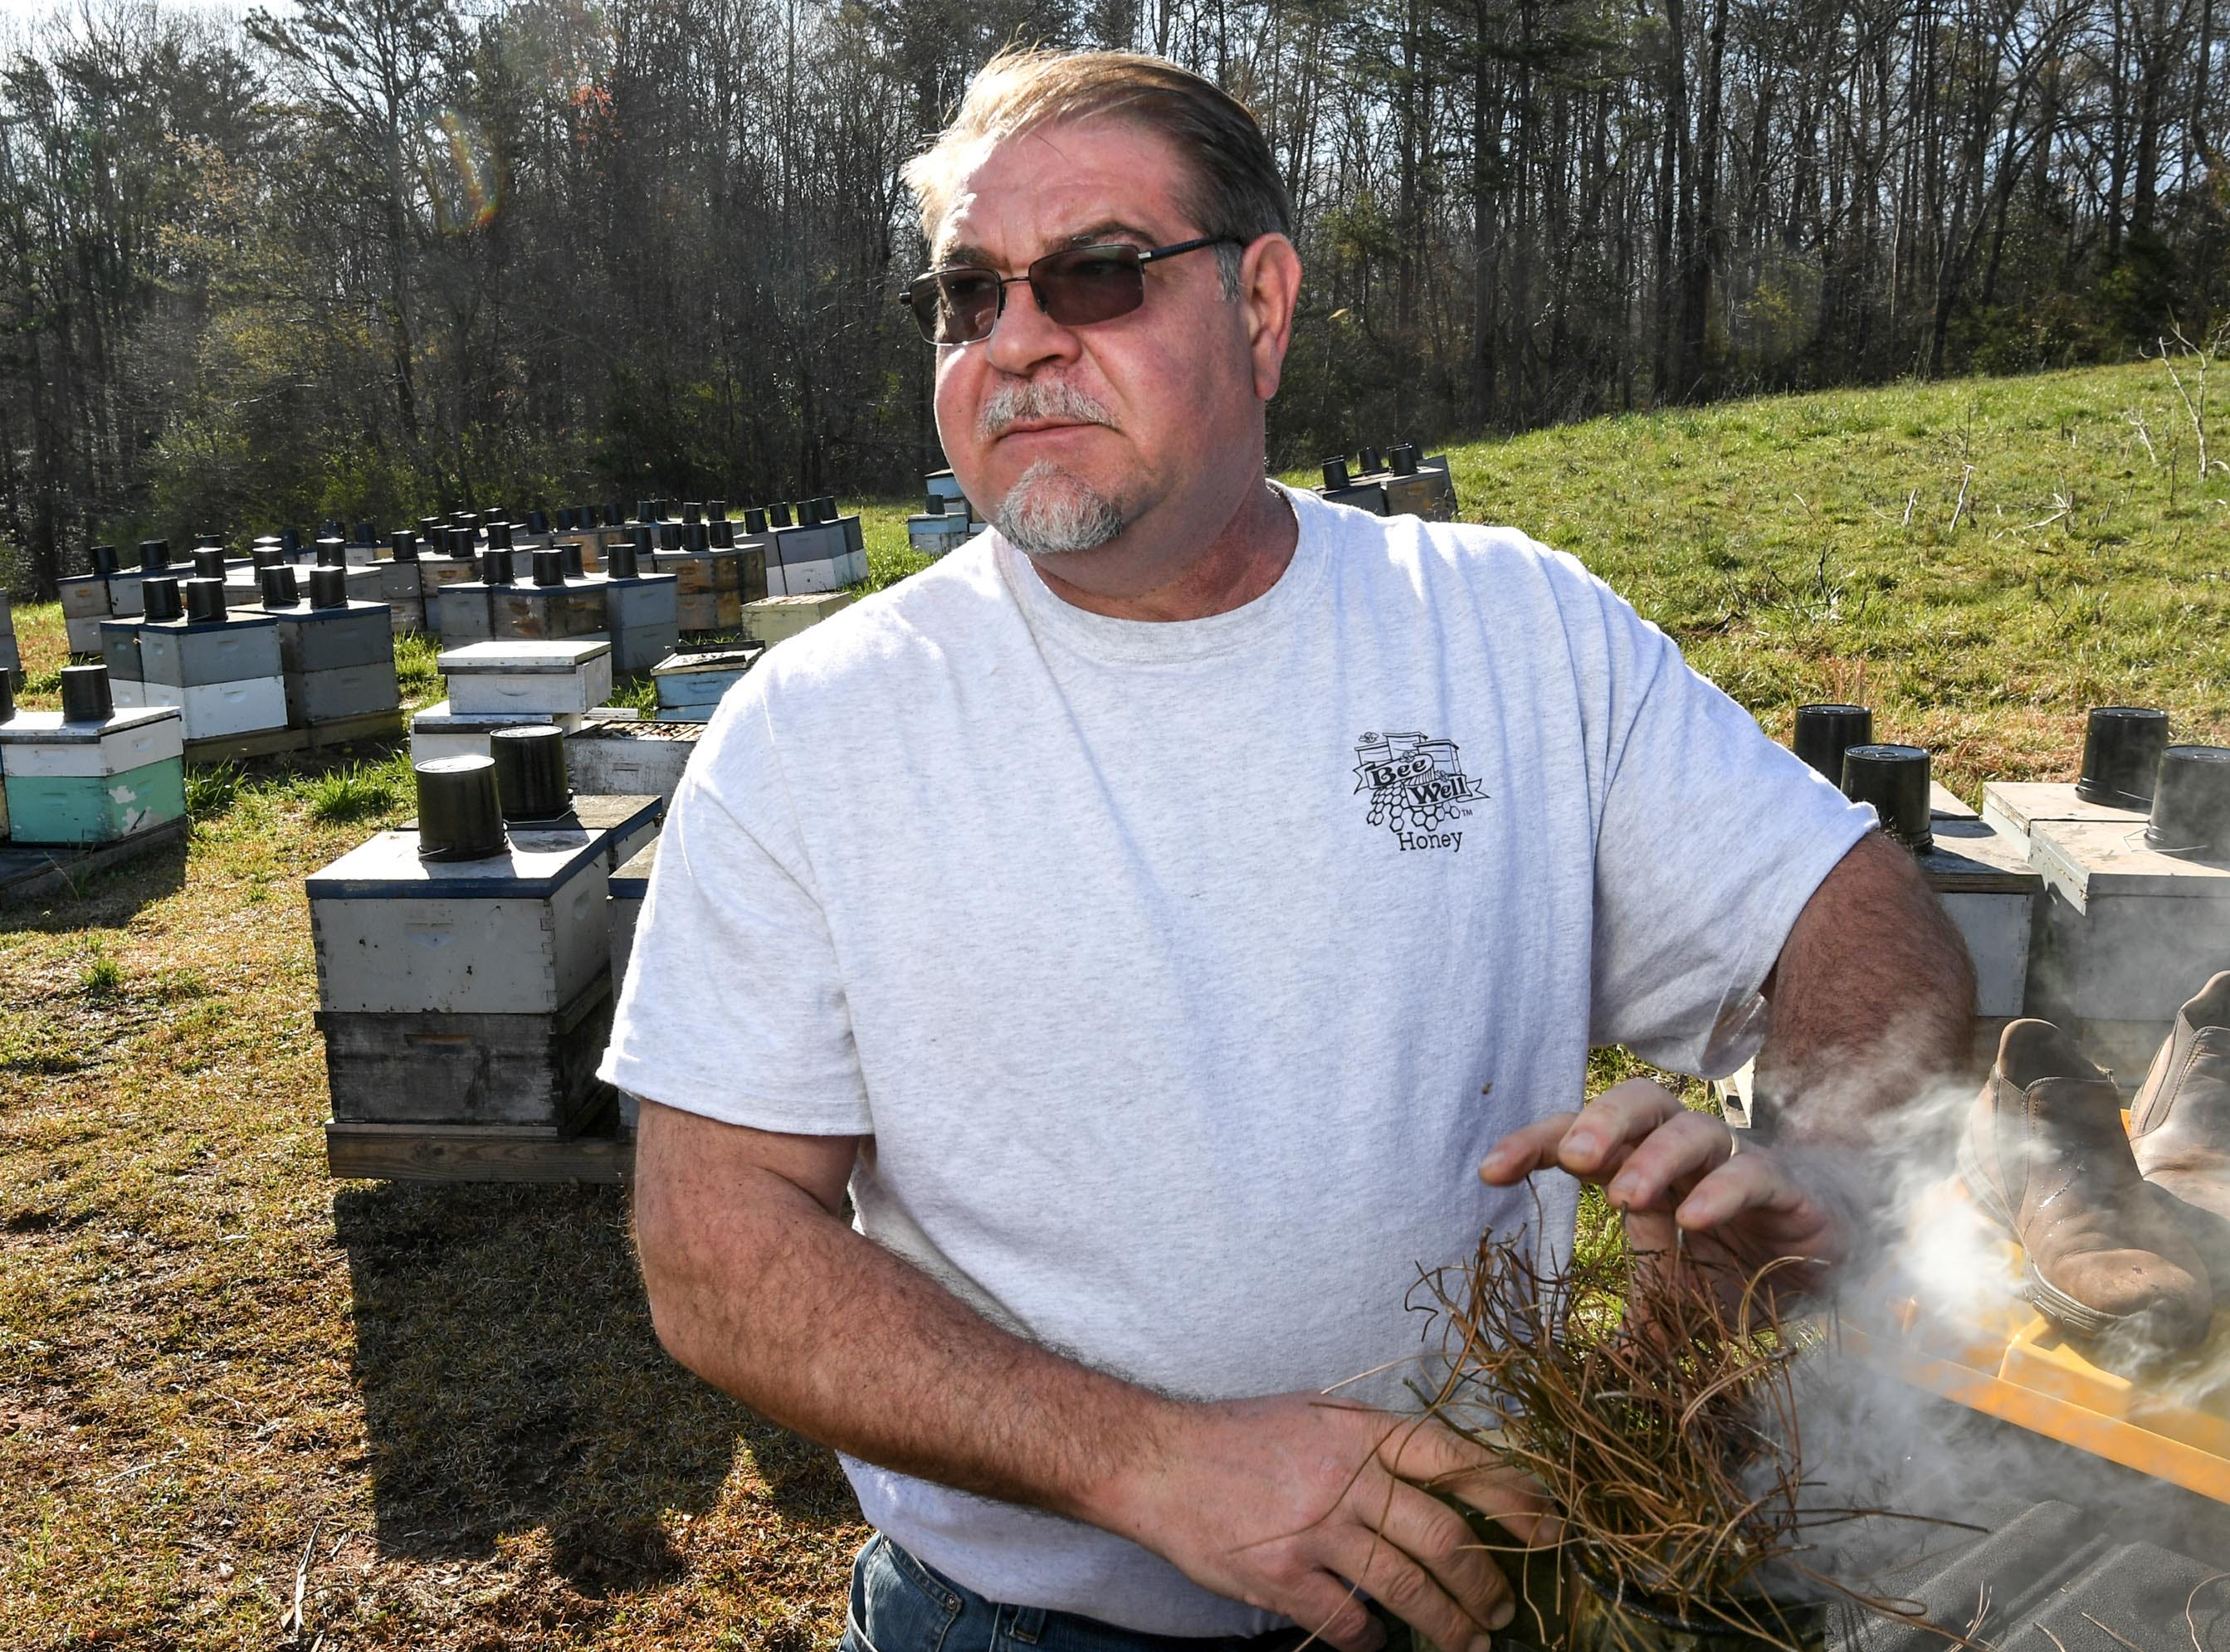 Kerry Owen, owner of Bee Well Honey in Pickens looks over bees at the Kaplan farm in Pickens Thursday.